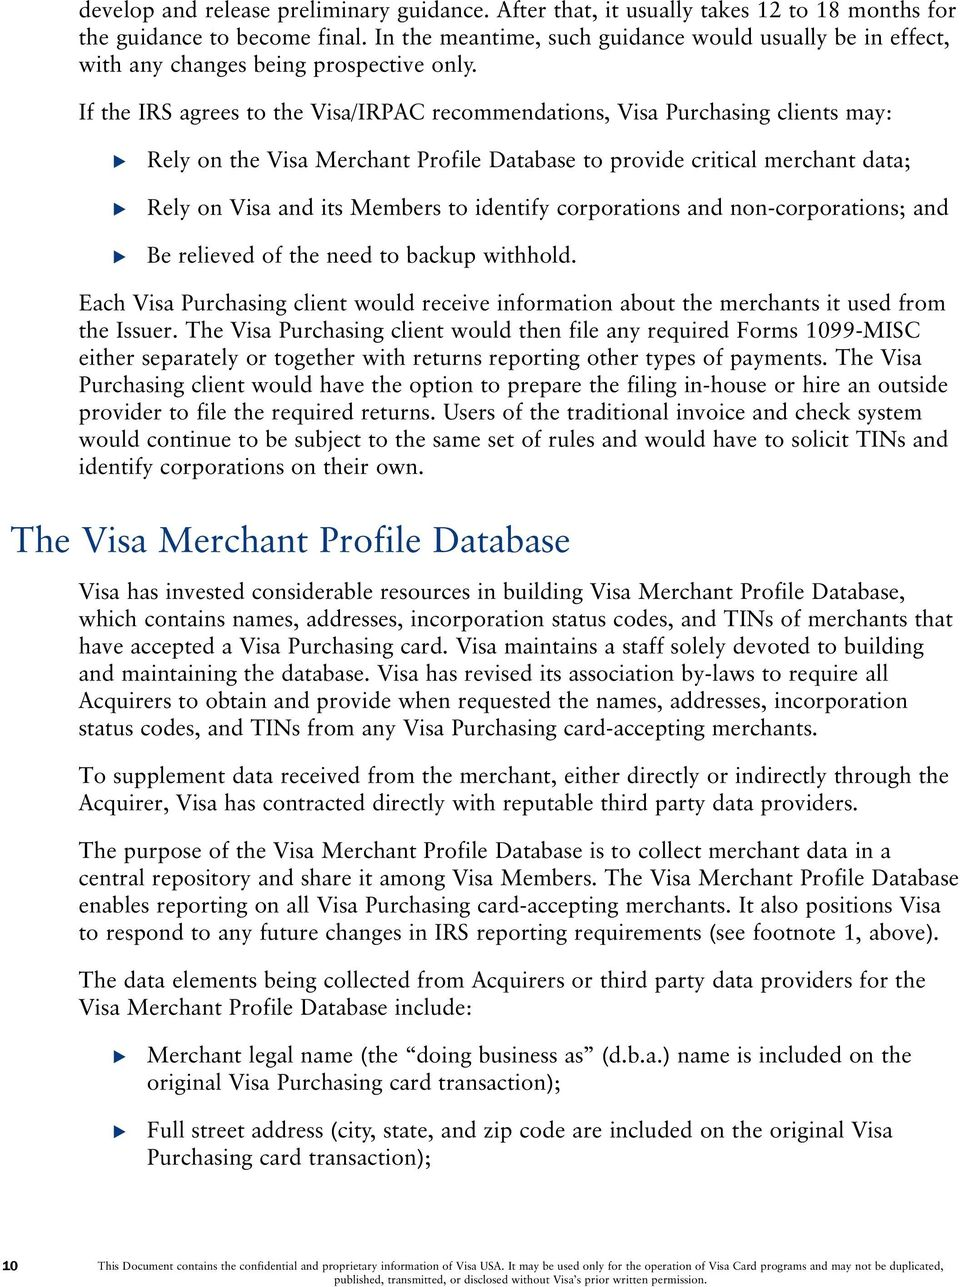 If the IRS agrees to the Visa/IRPAC recommendations, Visa Purchasing clients may: Rely on the Visa Merchant Profile Database to provide critical merchant data; Rely on Visa and its Members to